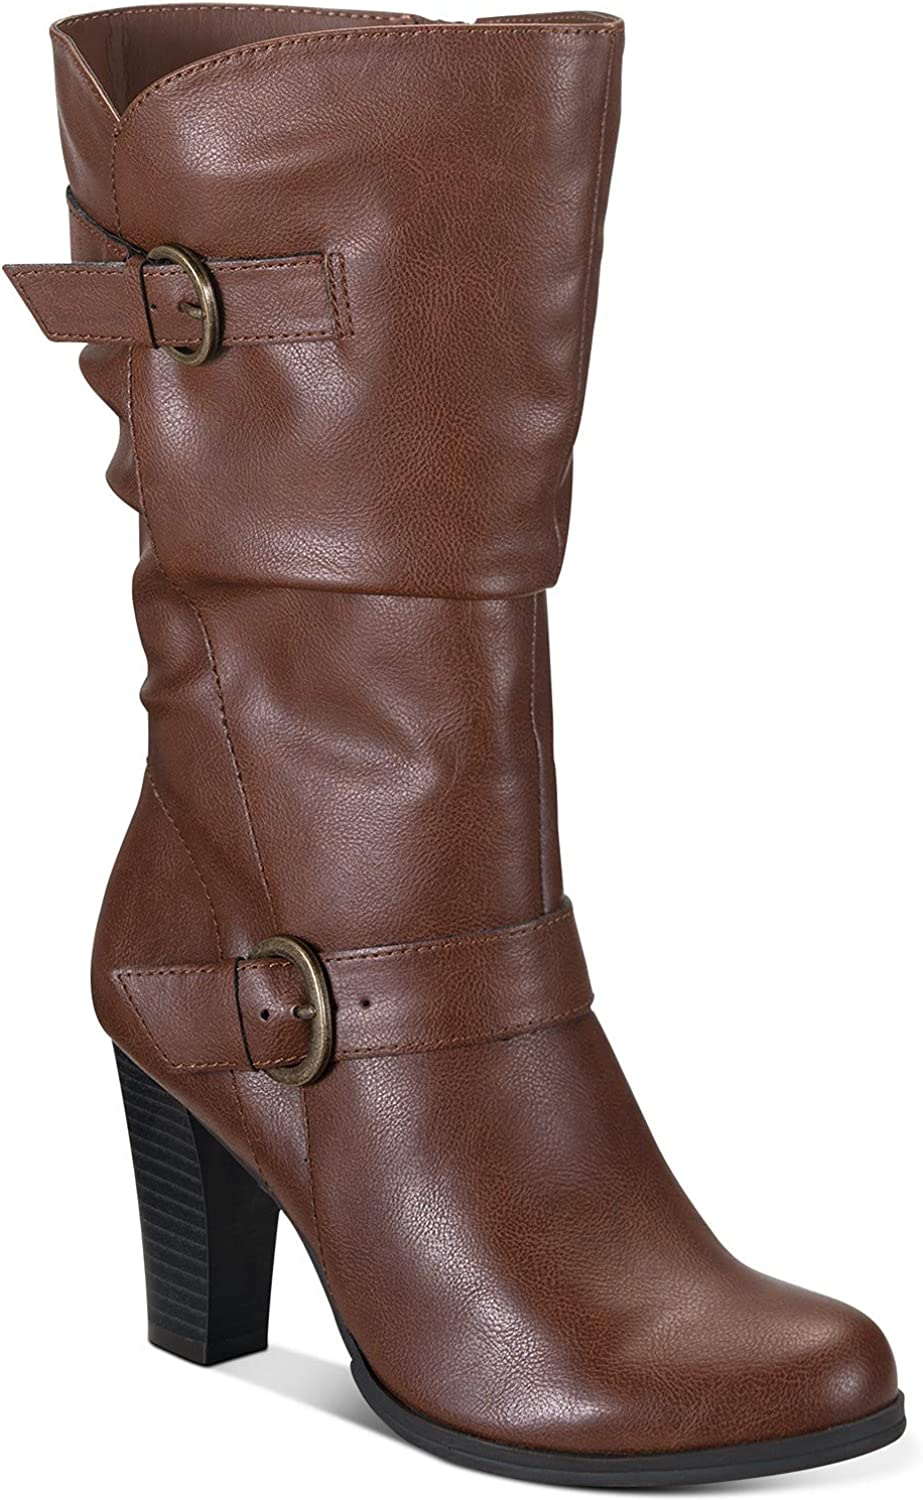 Style & Co. Women's Shoes Sachi Leather Almond Toe Mid-Calf Fashion Boots